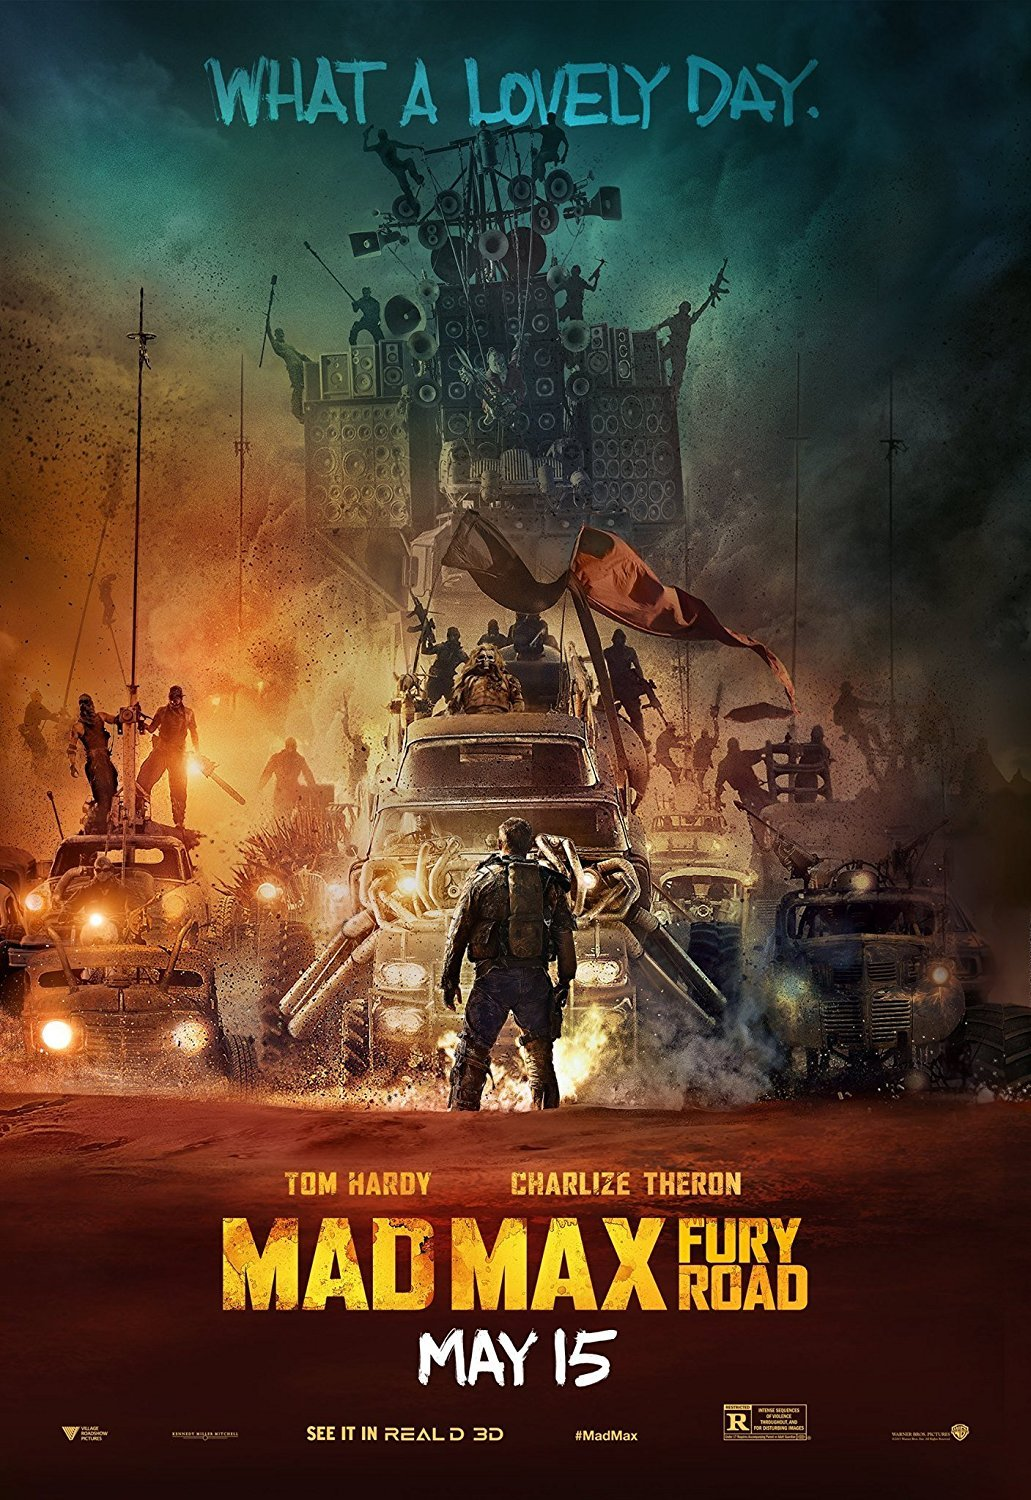 Mad Max: Fury Road Movie Poster 2015 24x36